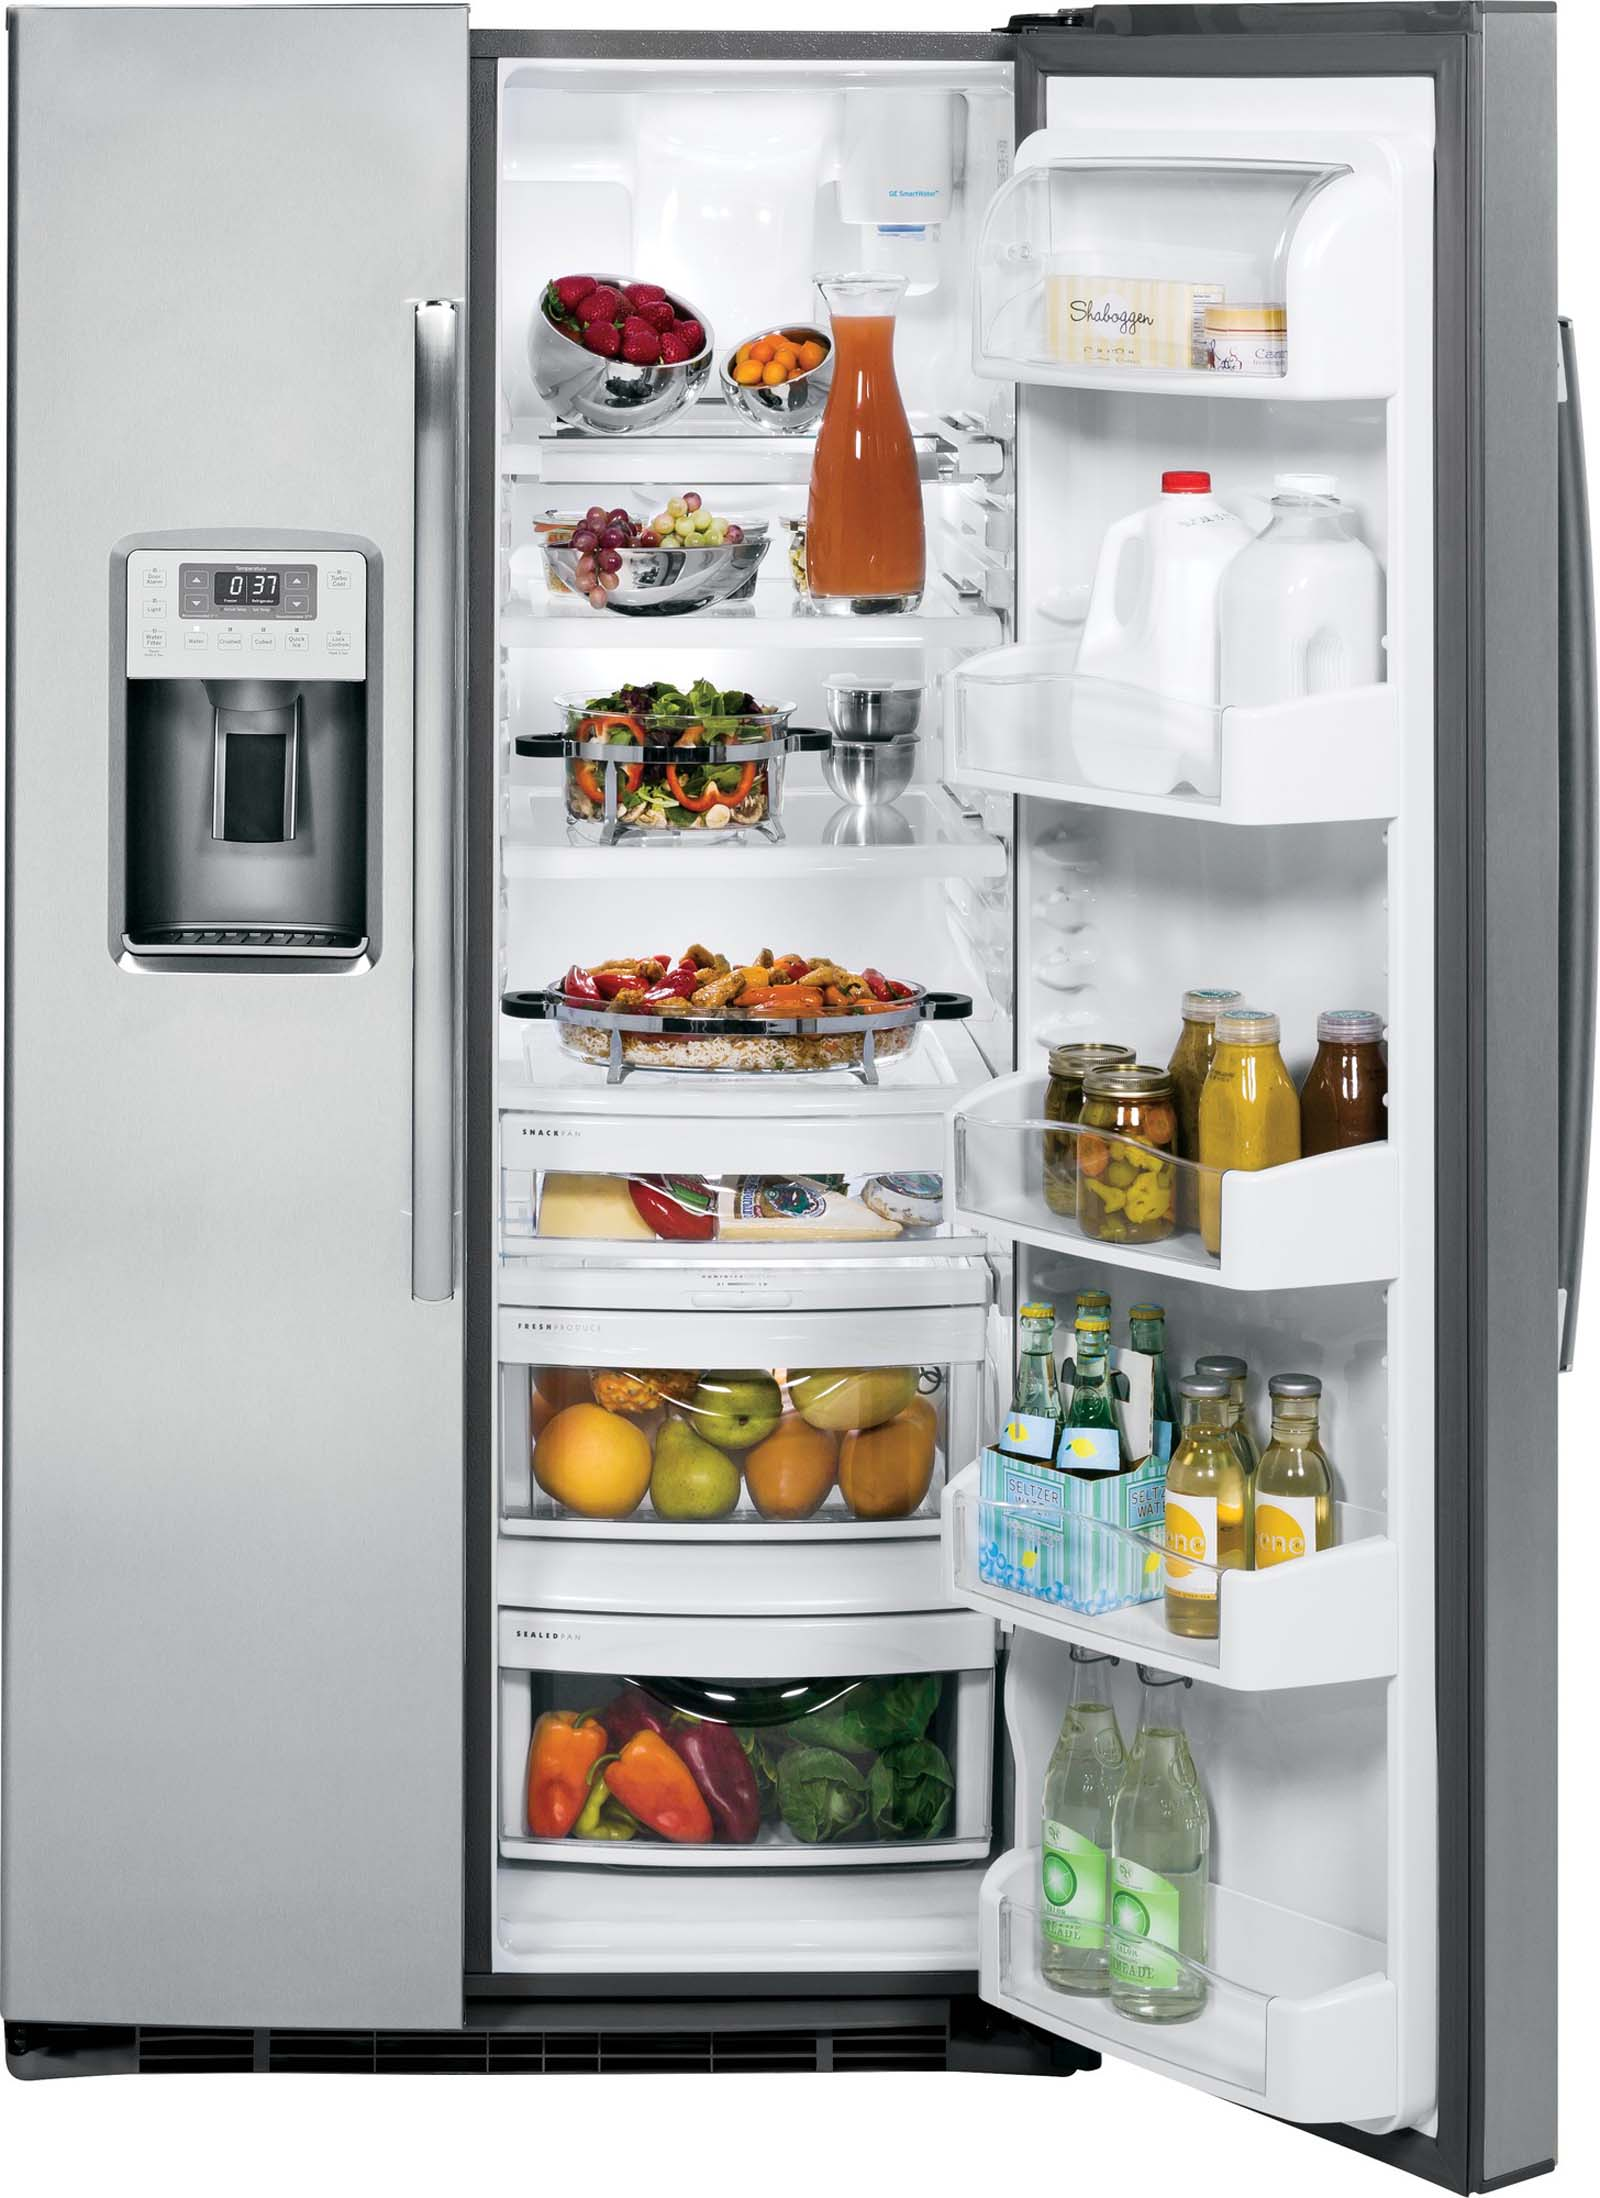 GE Profile 25 cu. ft. Side-by-Side Refrigerator - Stainless Steel